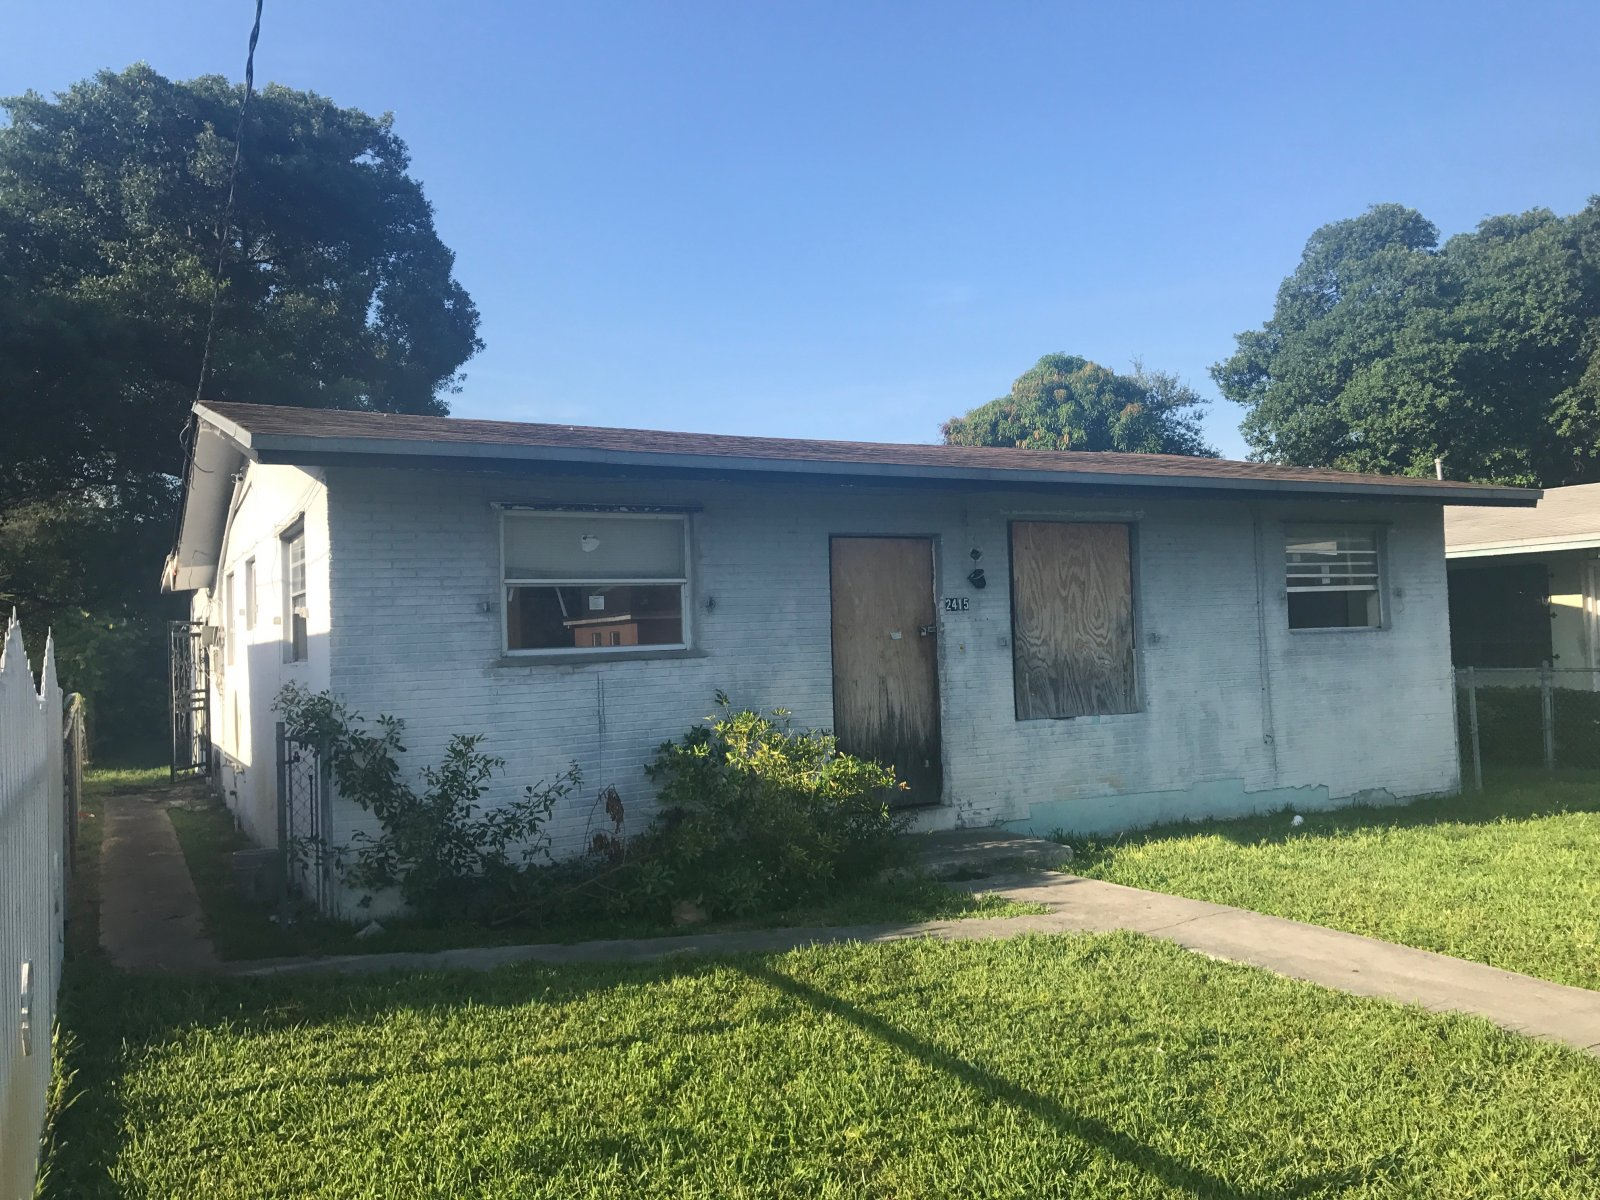 2415 NW 43RD ST, MIAMI, FL 33142 - IRG Corporation